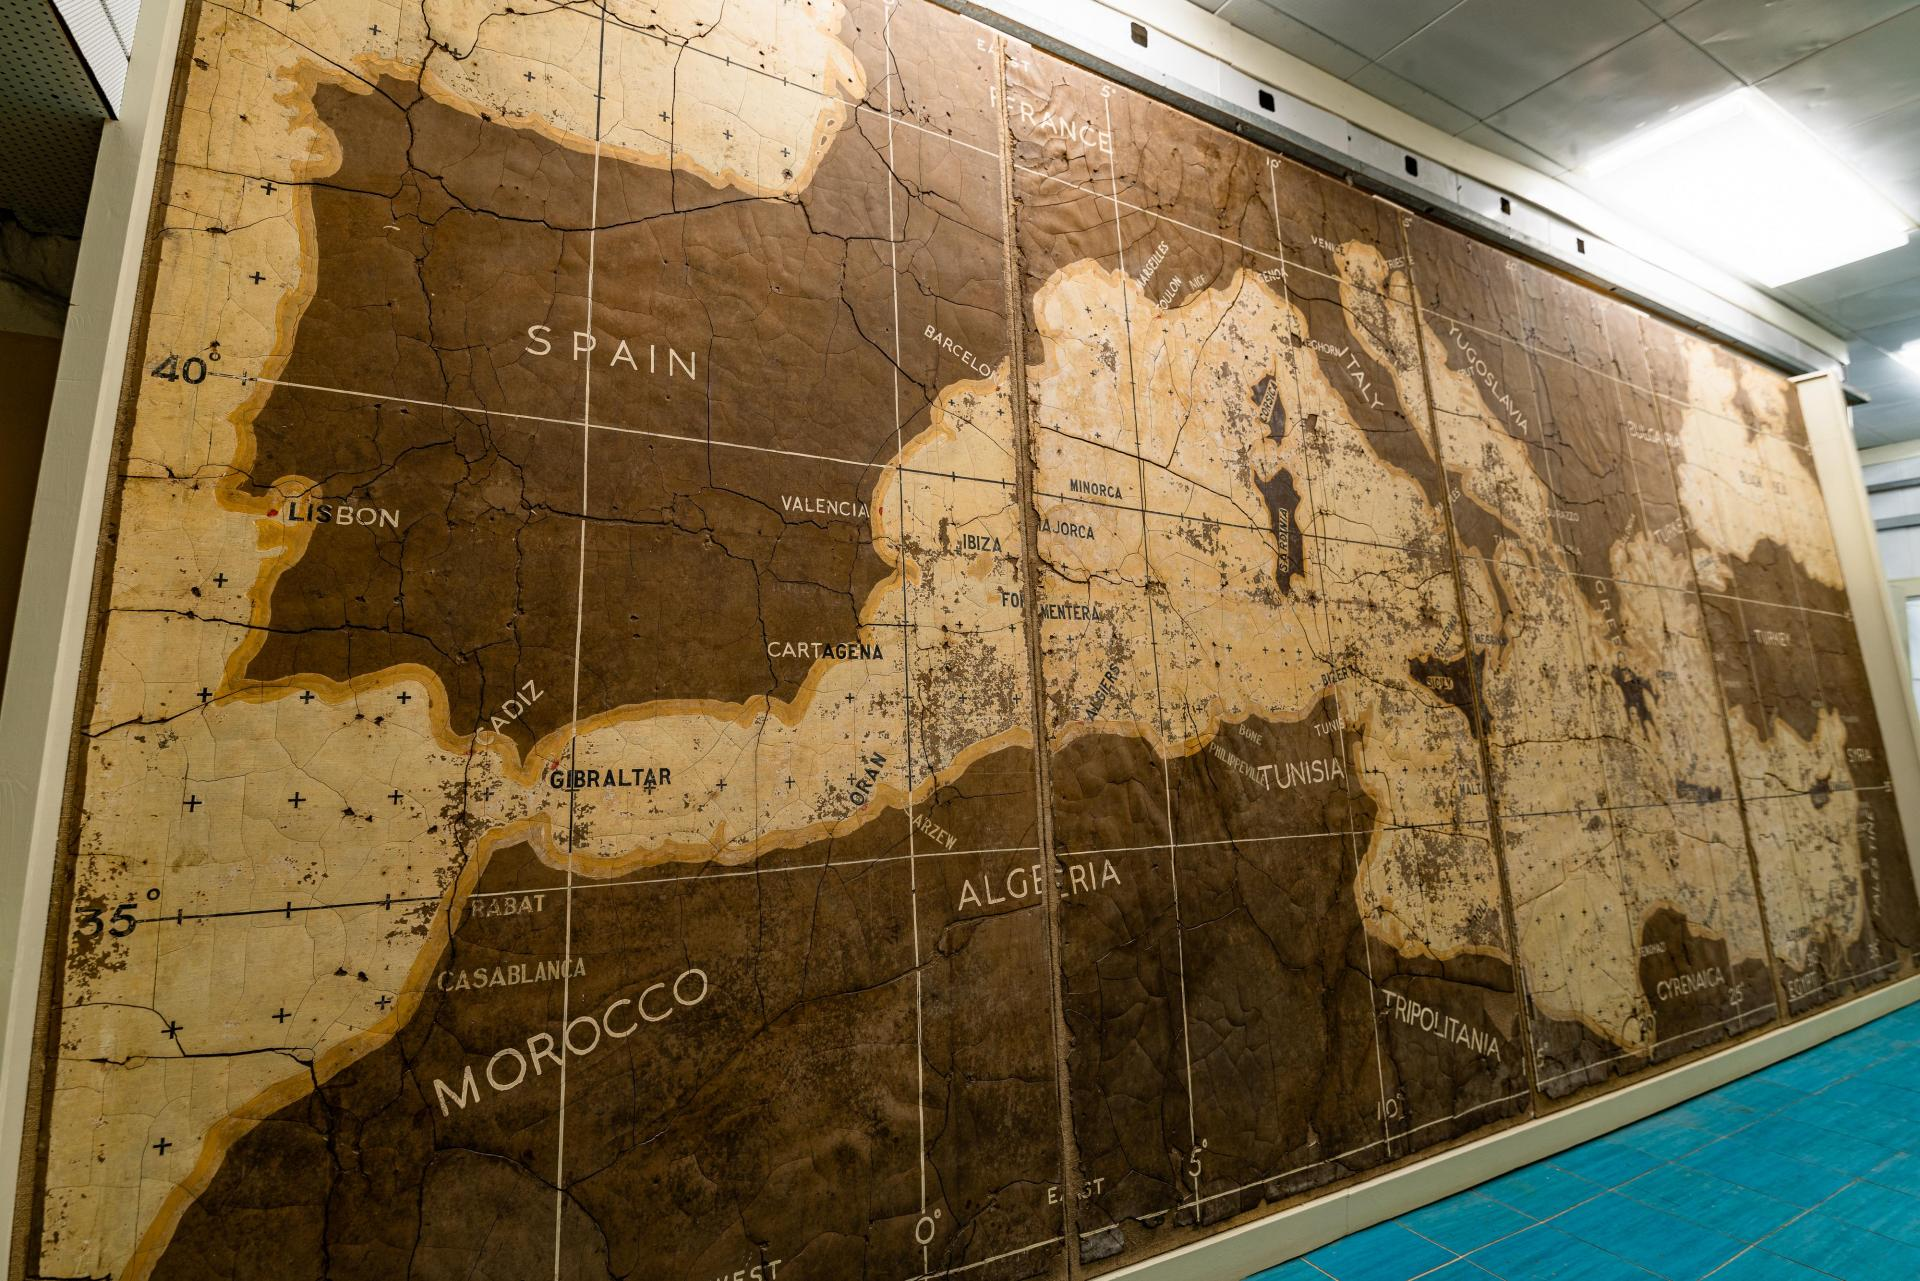 One of the maps discovered during the restoration process. Photo: Malta Airport Foundation, Fondazzjoni Wirt Artna